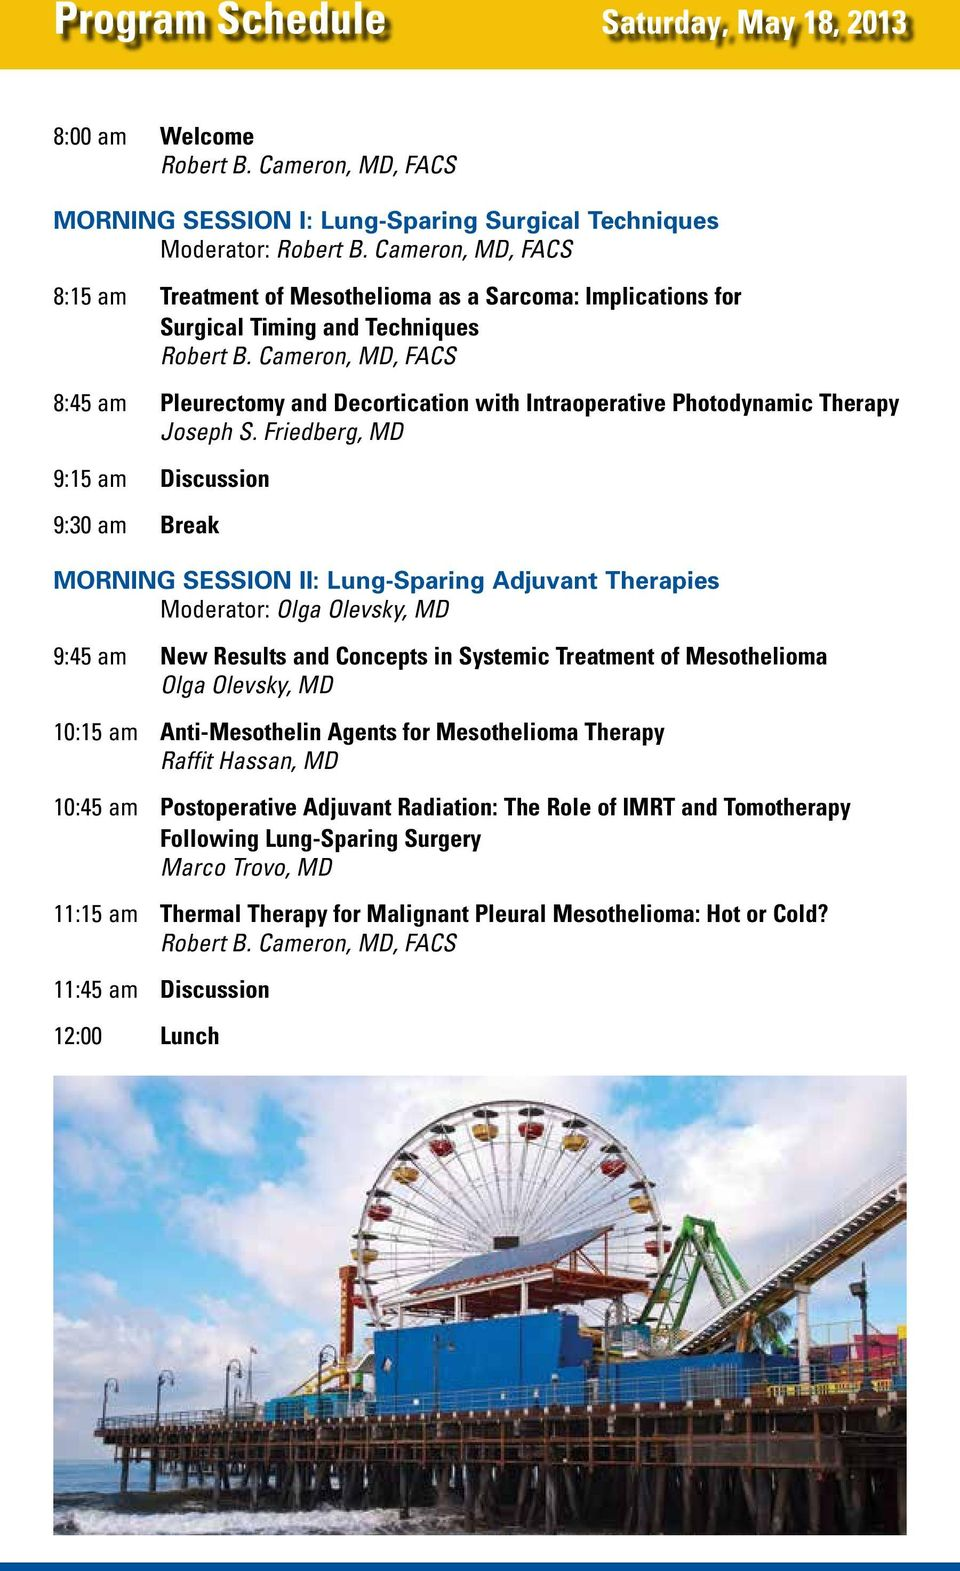 Friedberg, MD 9:15 am Discussion 9:30 am Break Morning Session II: Lung-Sparing Adjuvant Therapies Moderator: Olga Olevsky, MD 9:45 am New Results and Concepts in Systemic Treatment of Mesothelioma